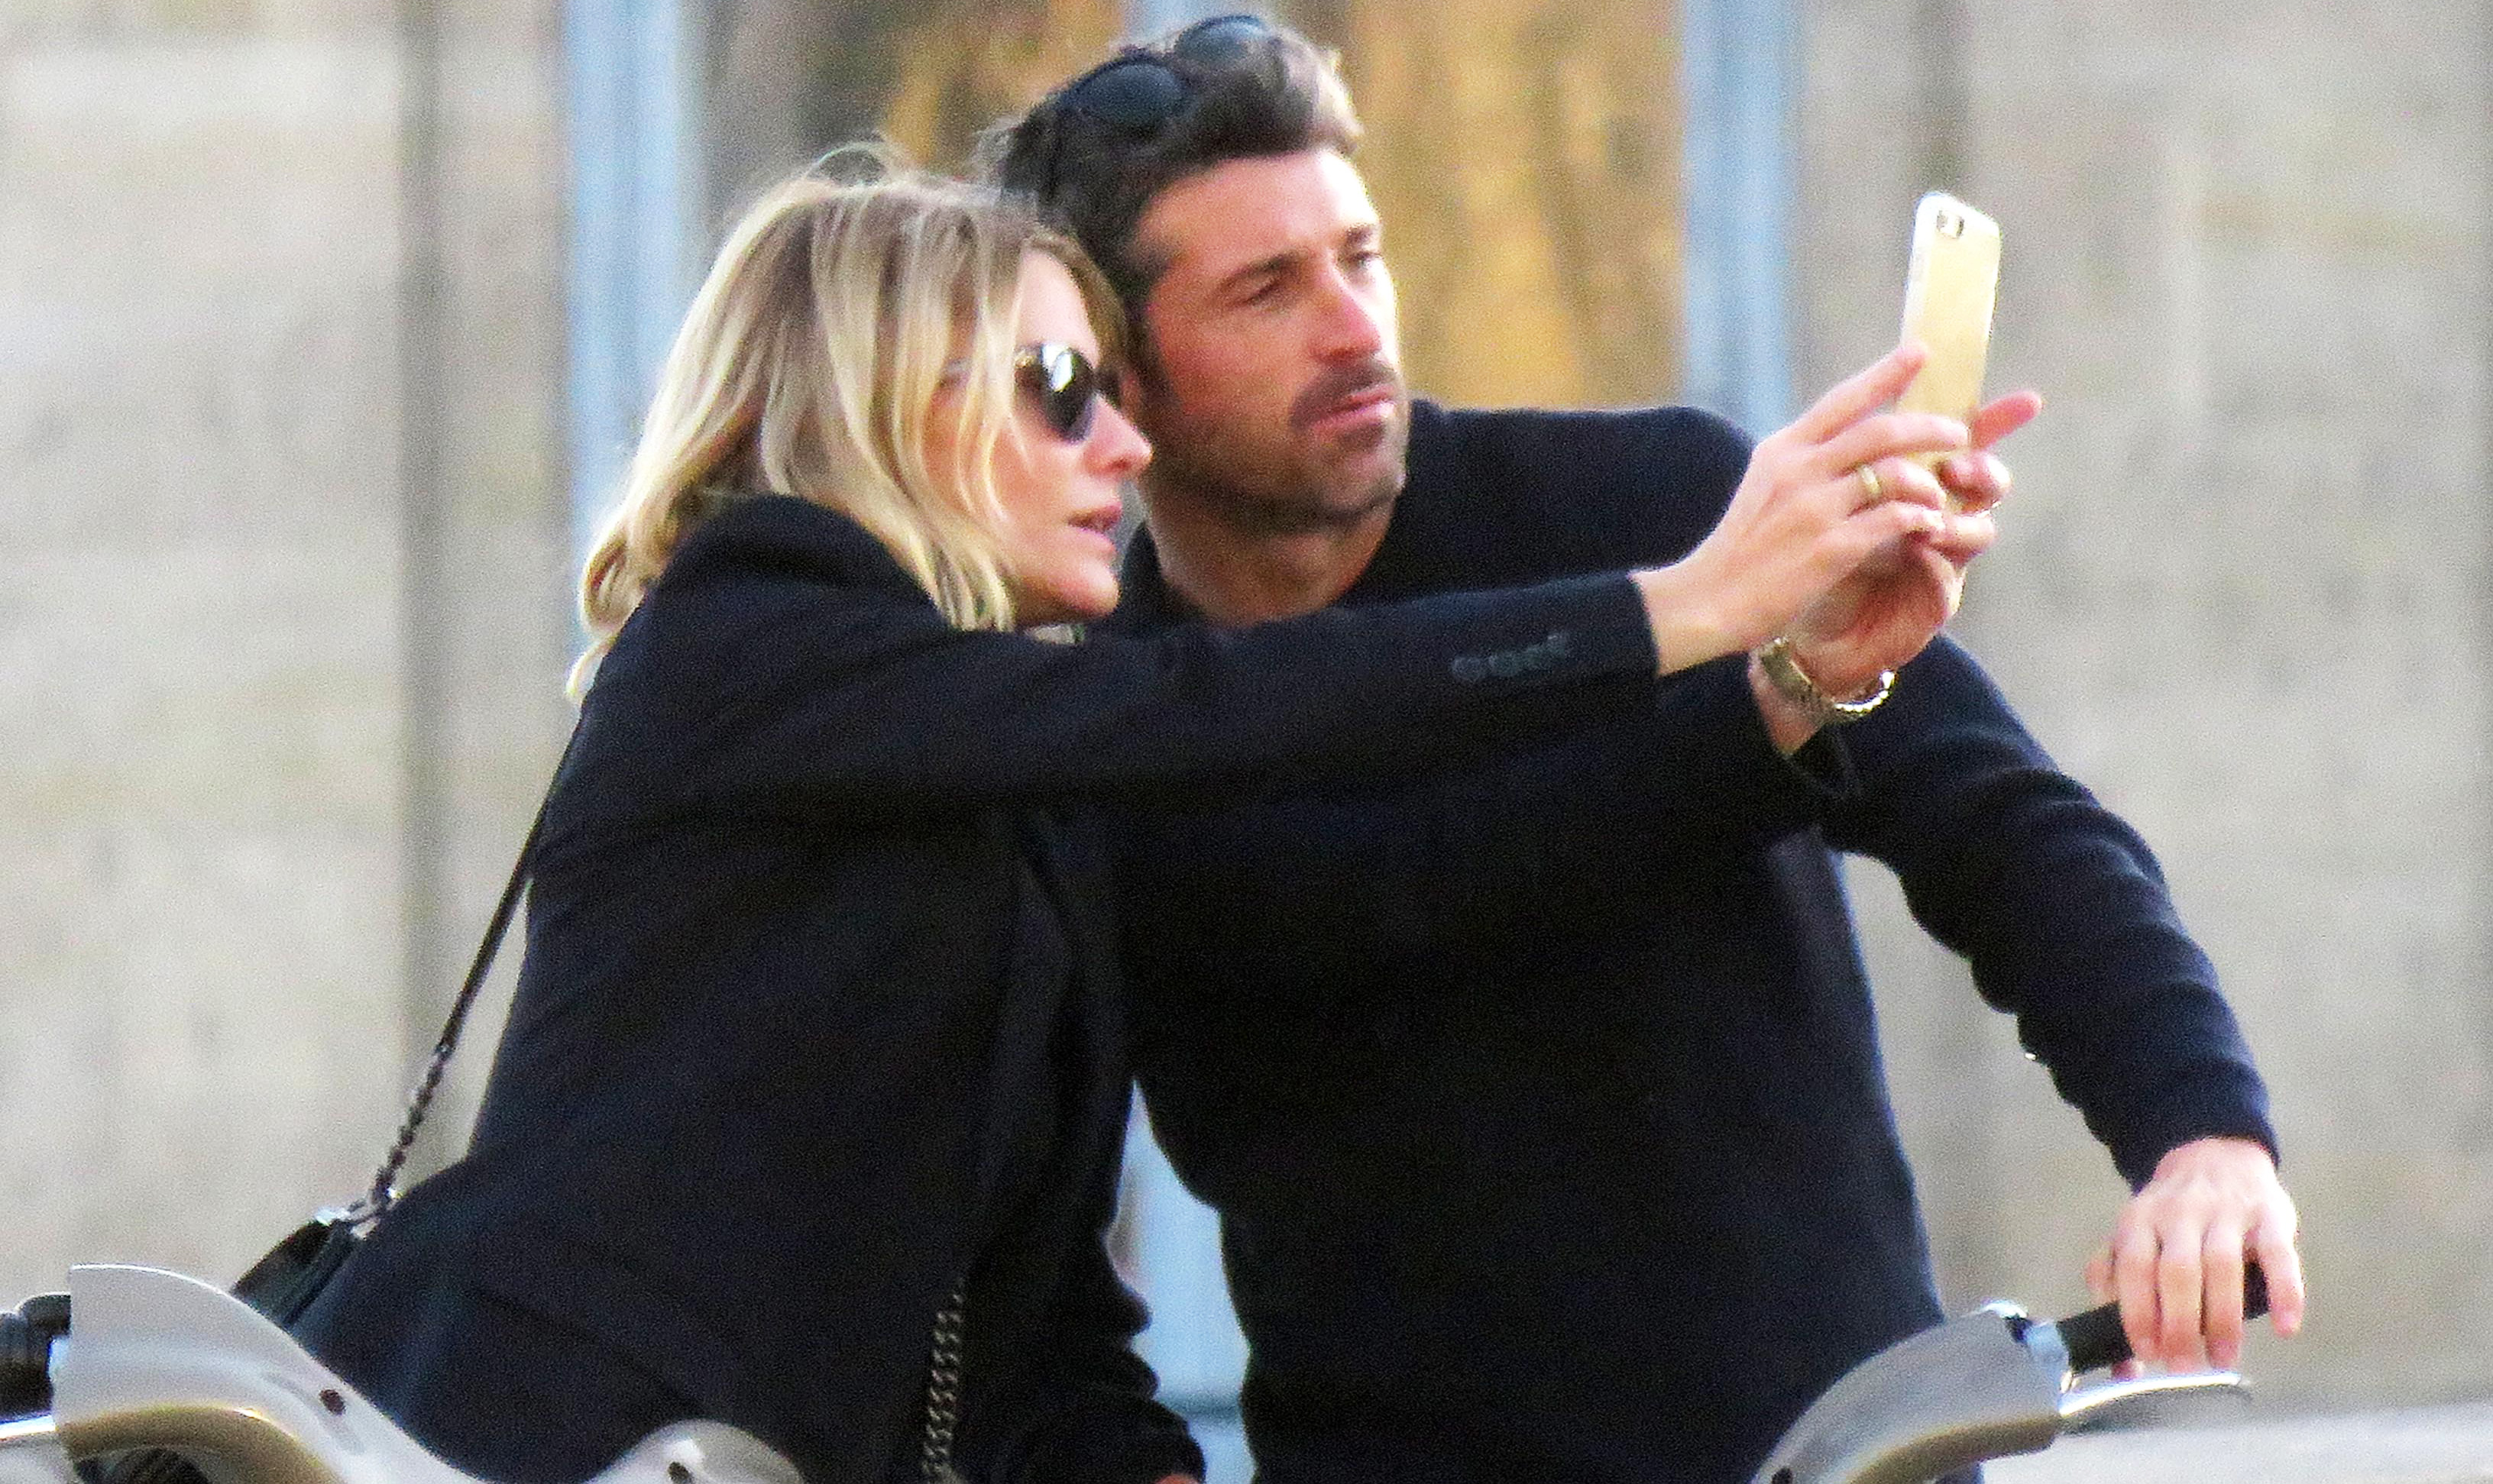 Patrick Dempsey And Estranged Wife Jillian Fink Are Working On